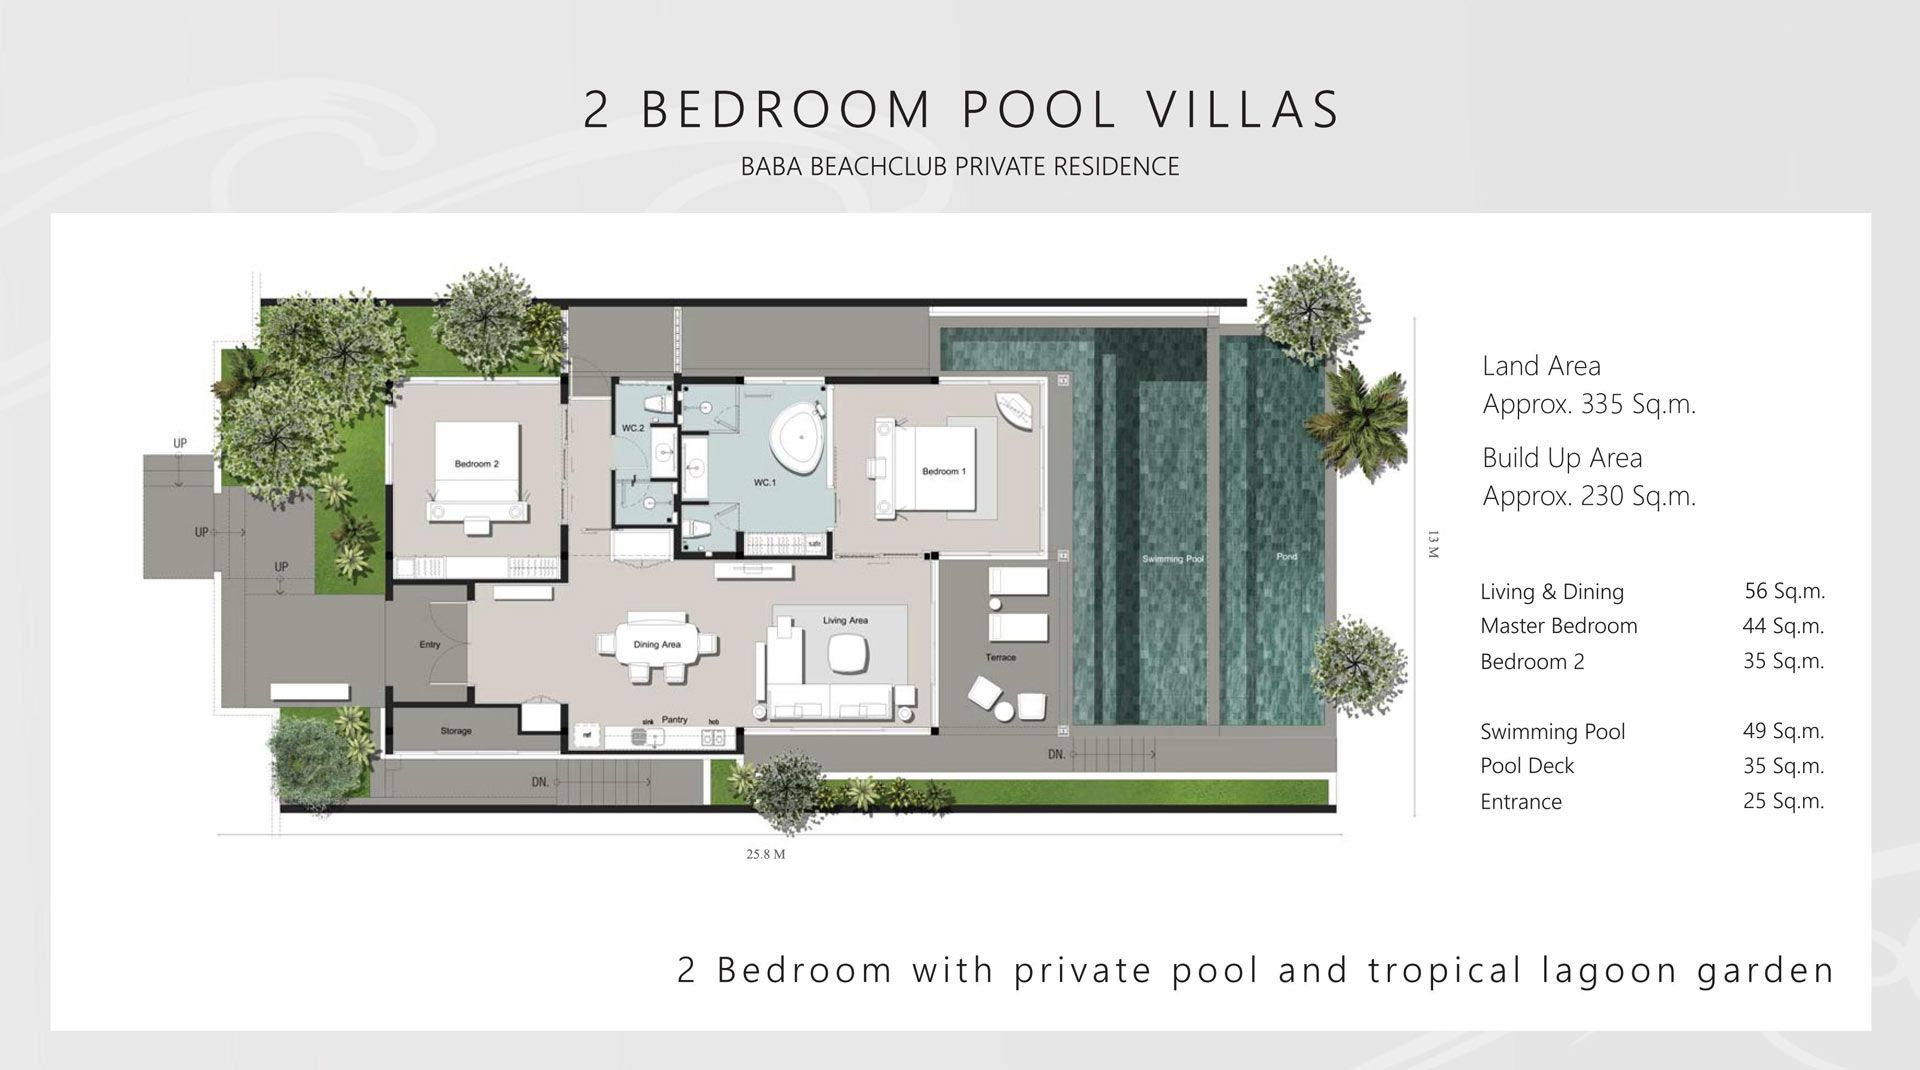 01 Two Bedroom Pool Villa Floor Plan Jpg Resort Design Plan Villa Pool Hotel Room Design Plan